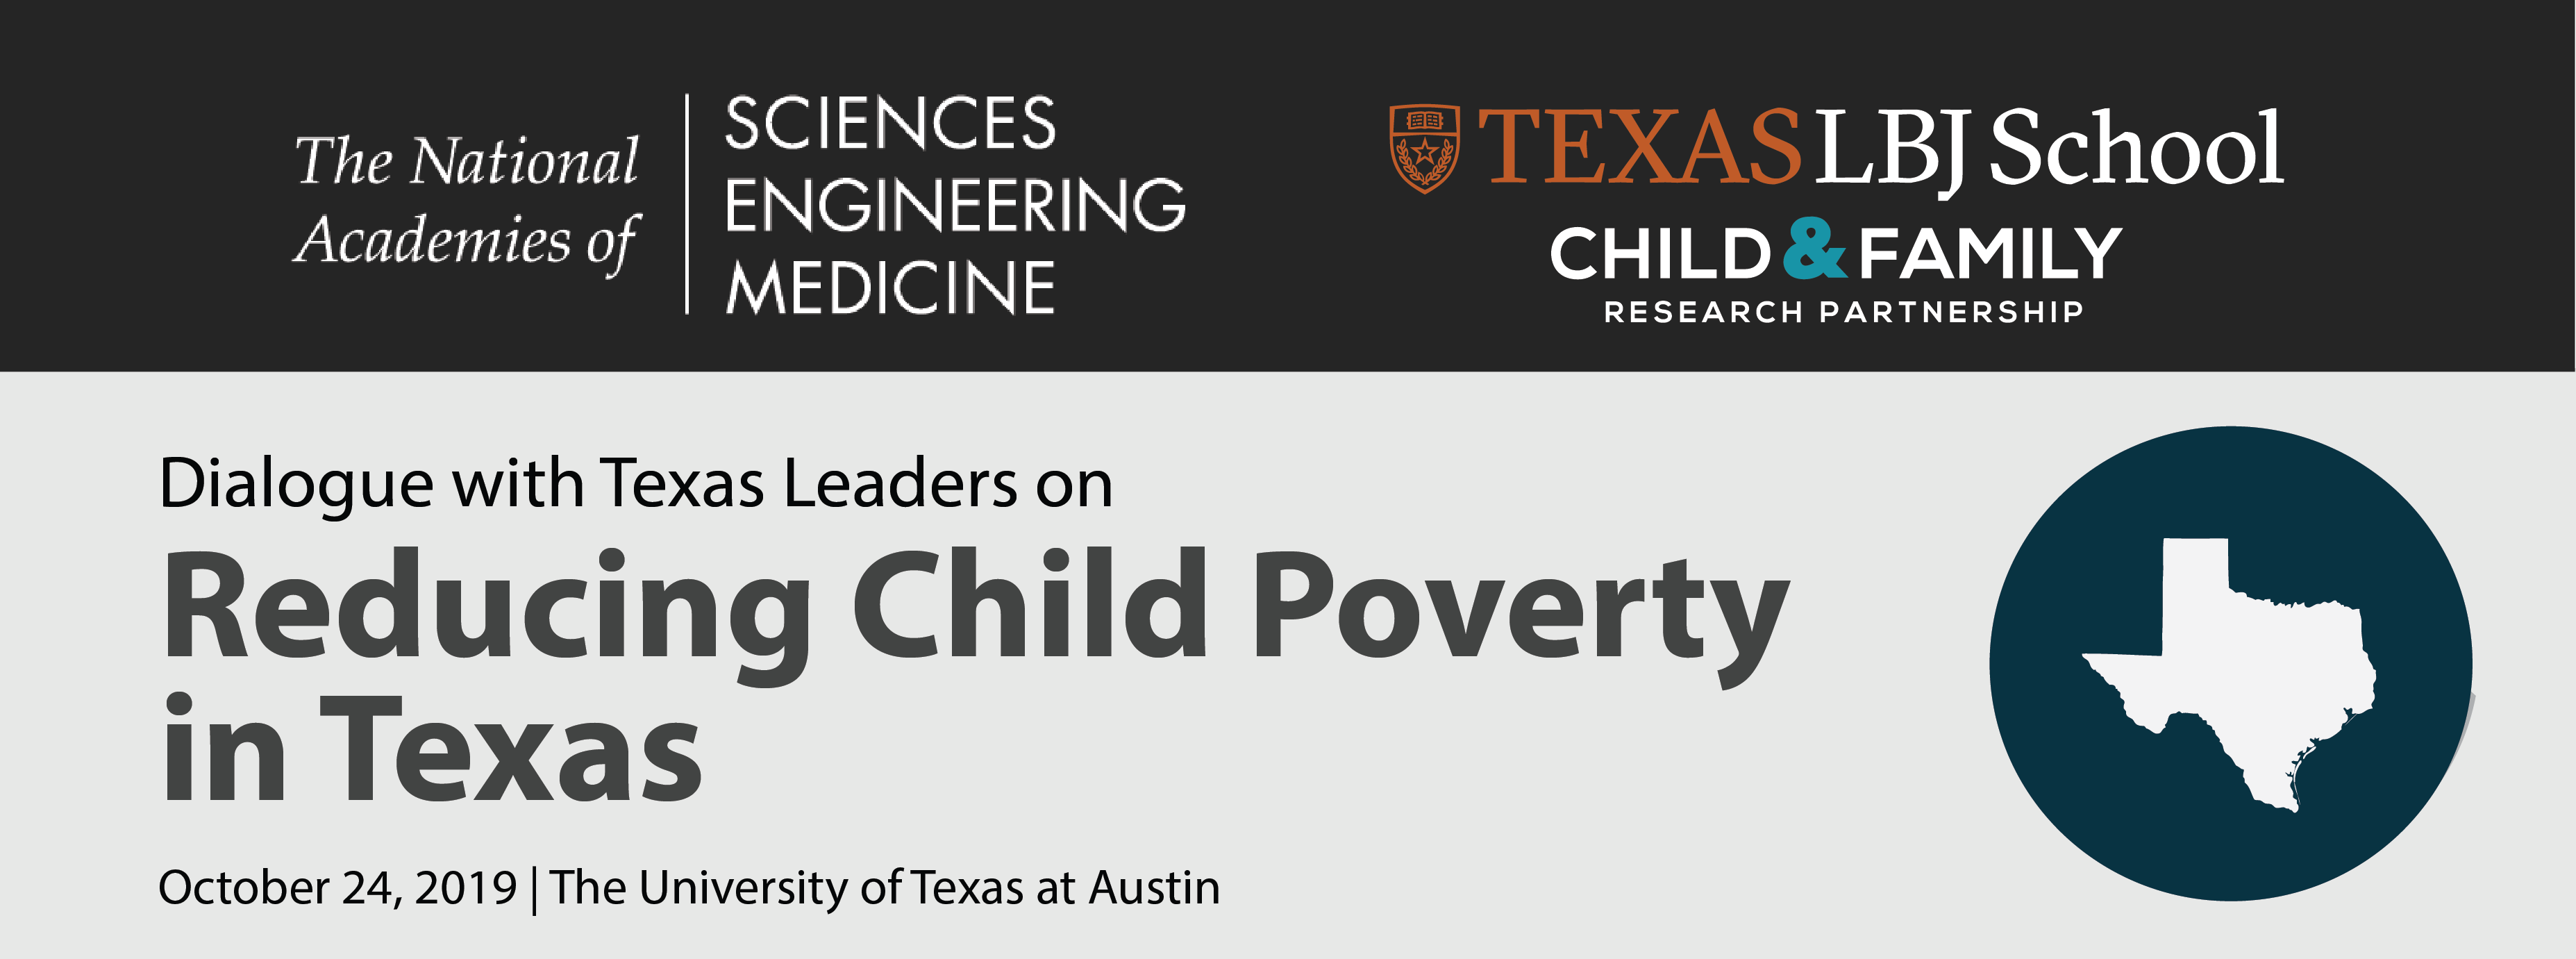 Dialogue with Texas Leaders on Reducing Child Poverty